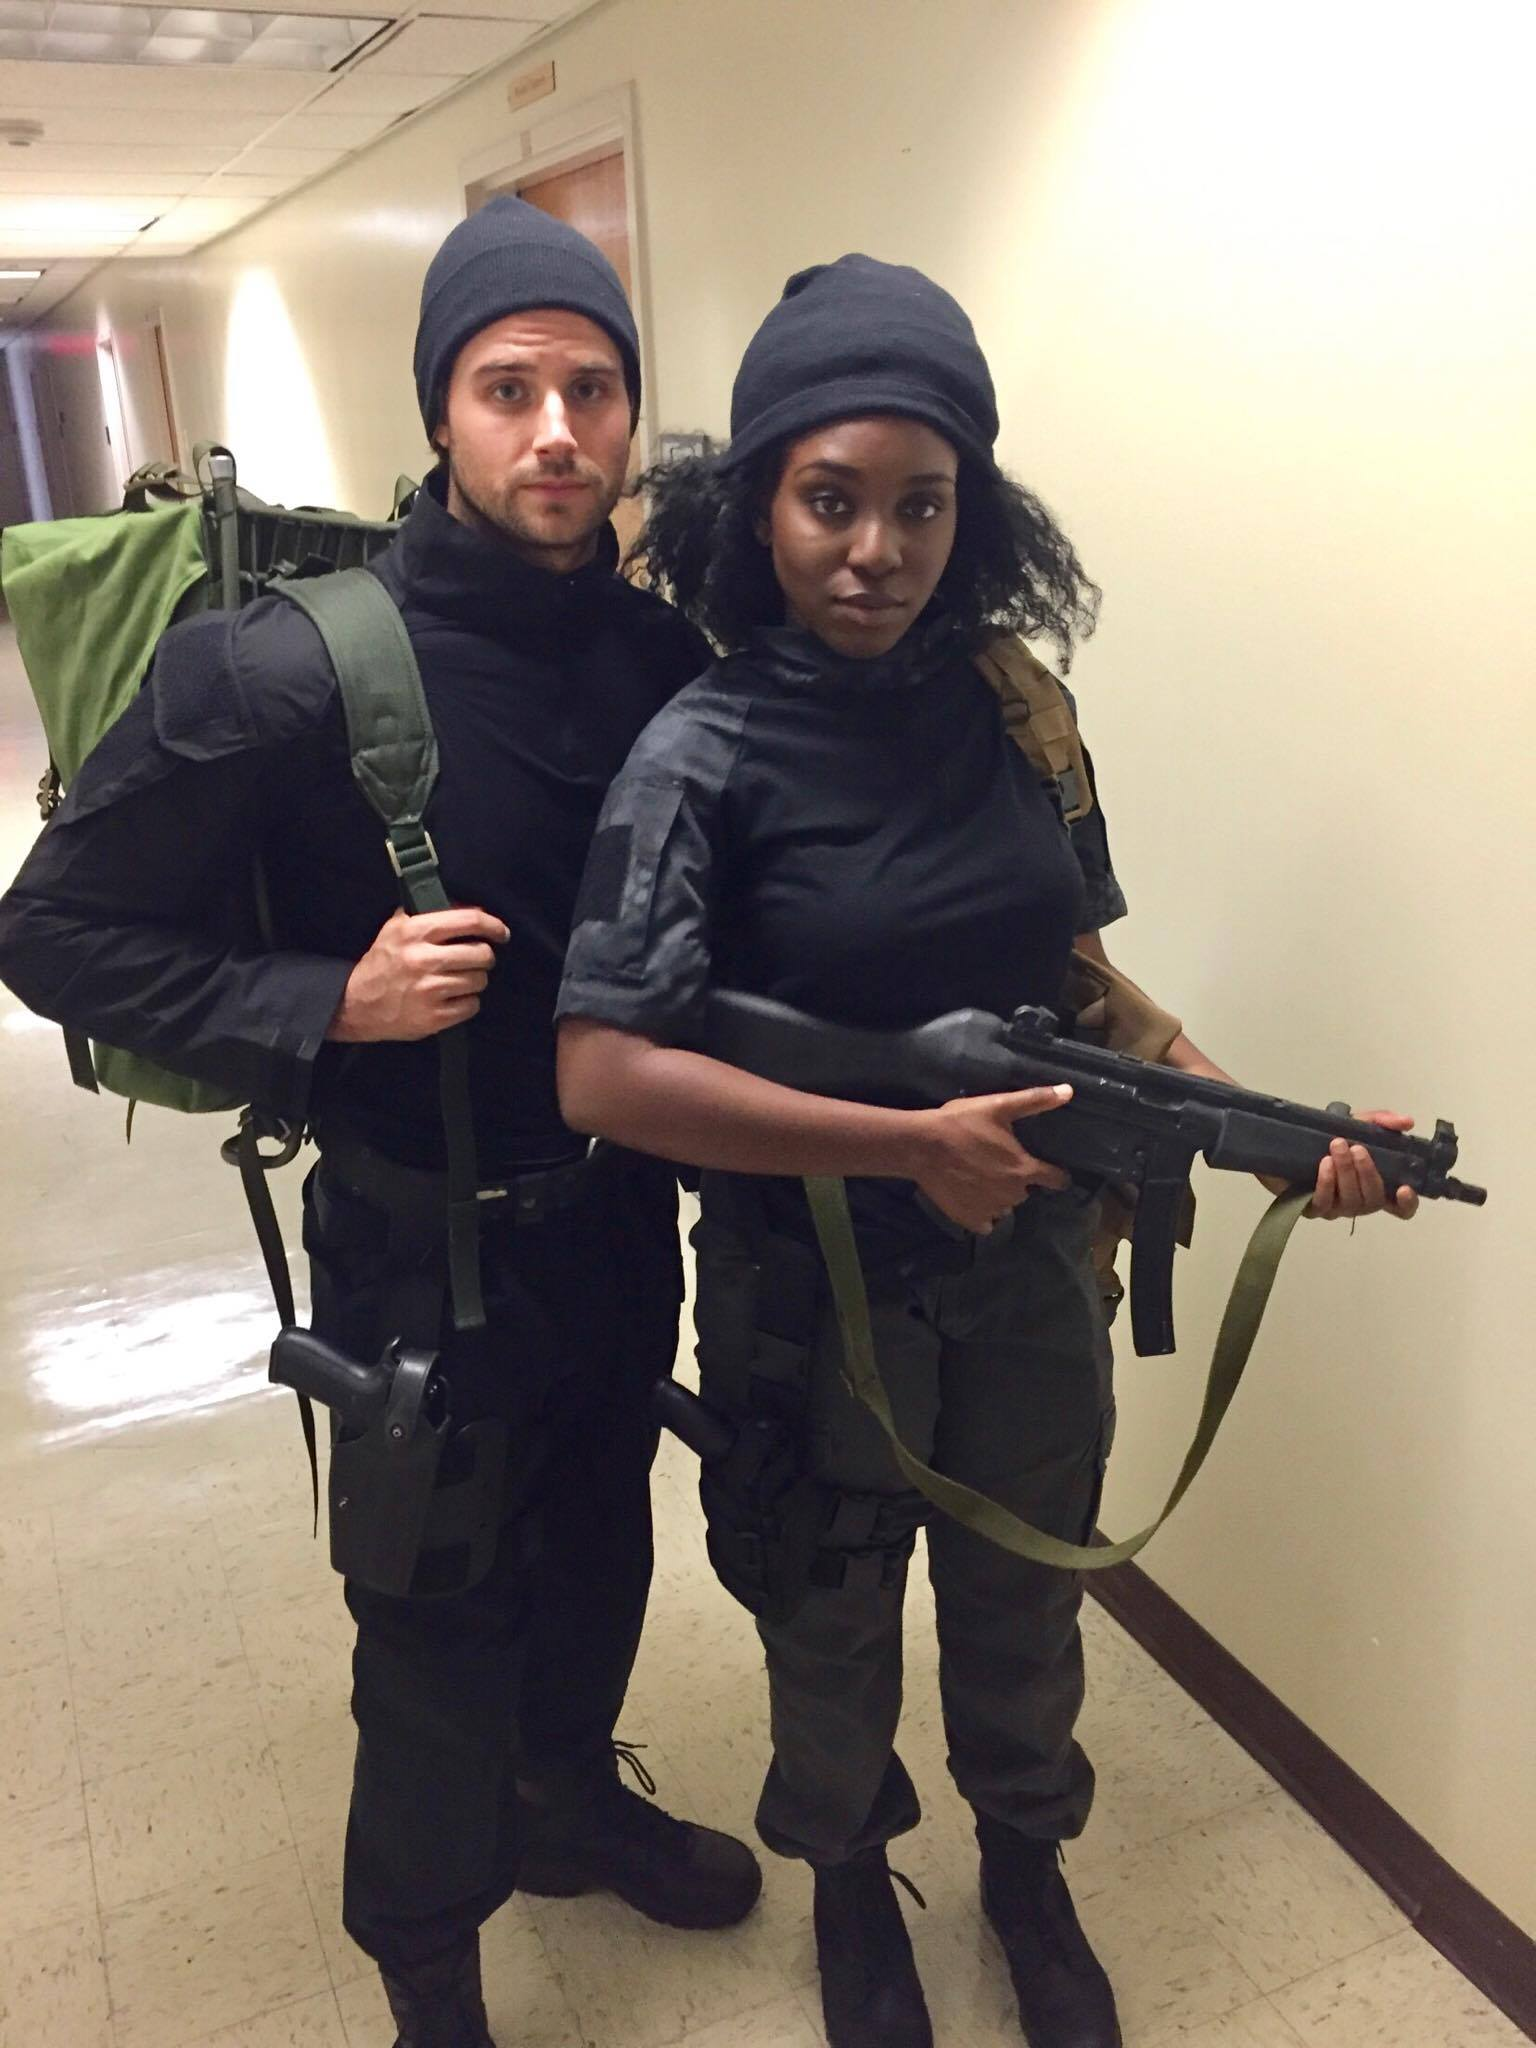 Actors are fully outfitted for their next scene thanks to the work of DKA active Alex Simon, who planned the costume design for the whole series.